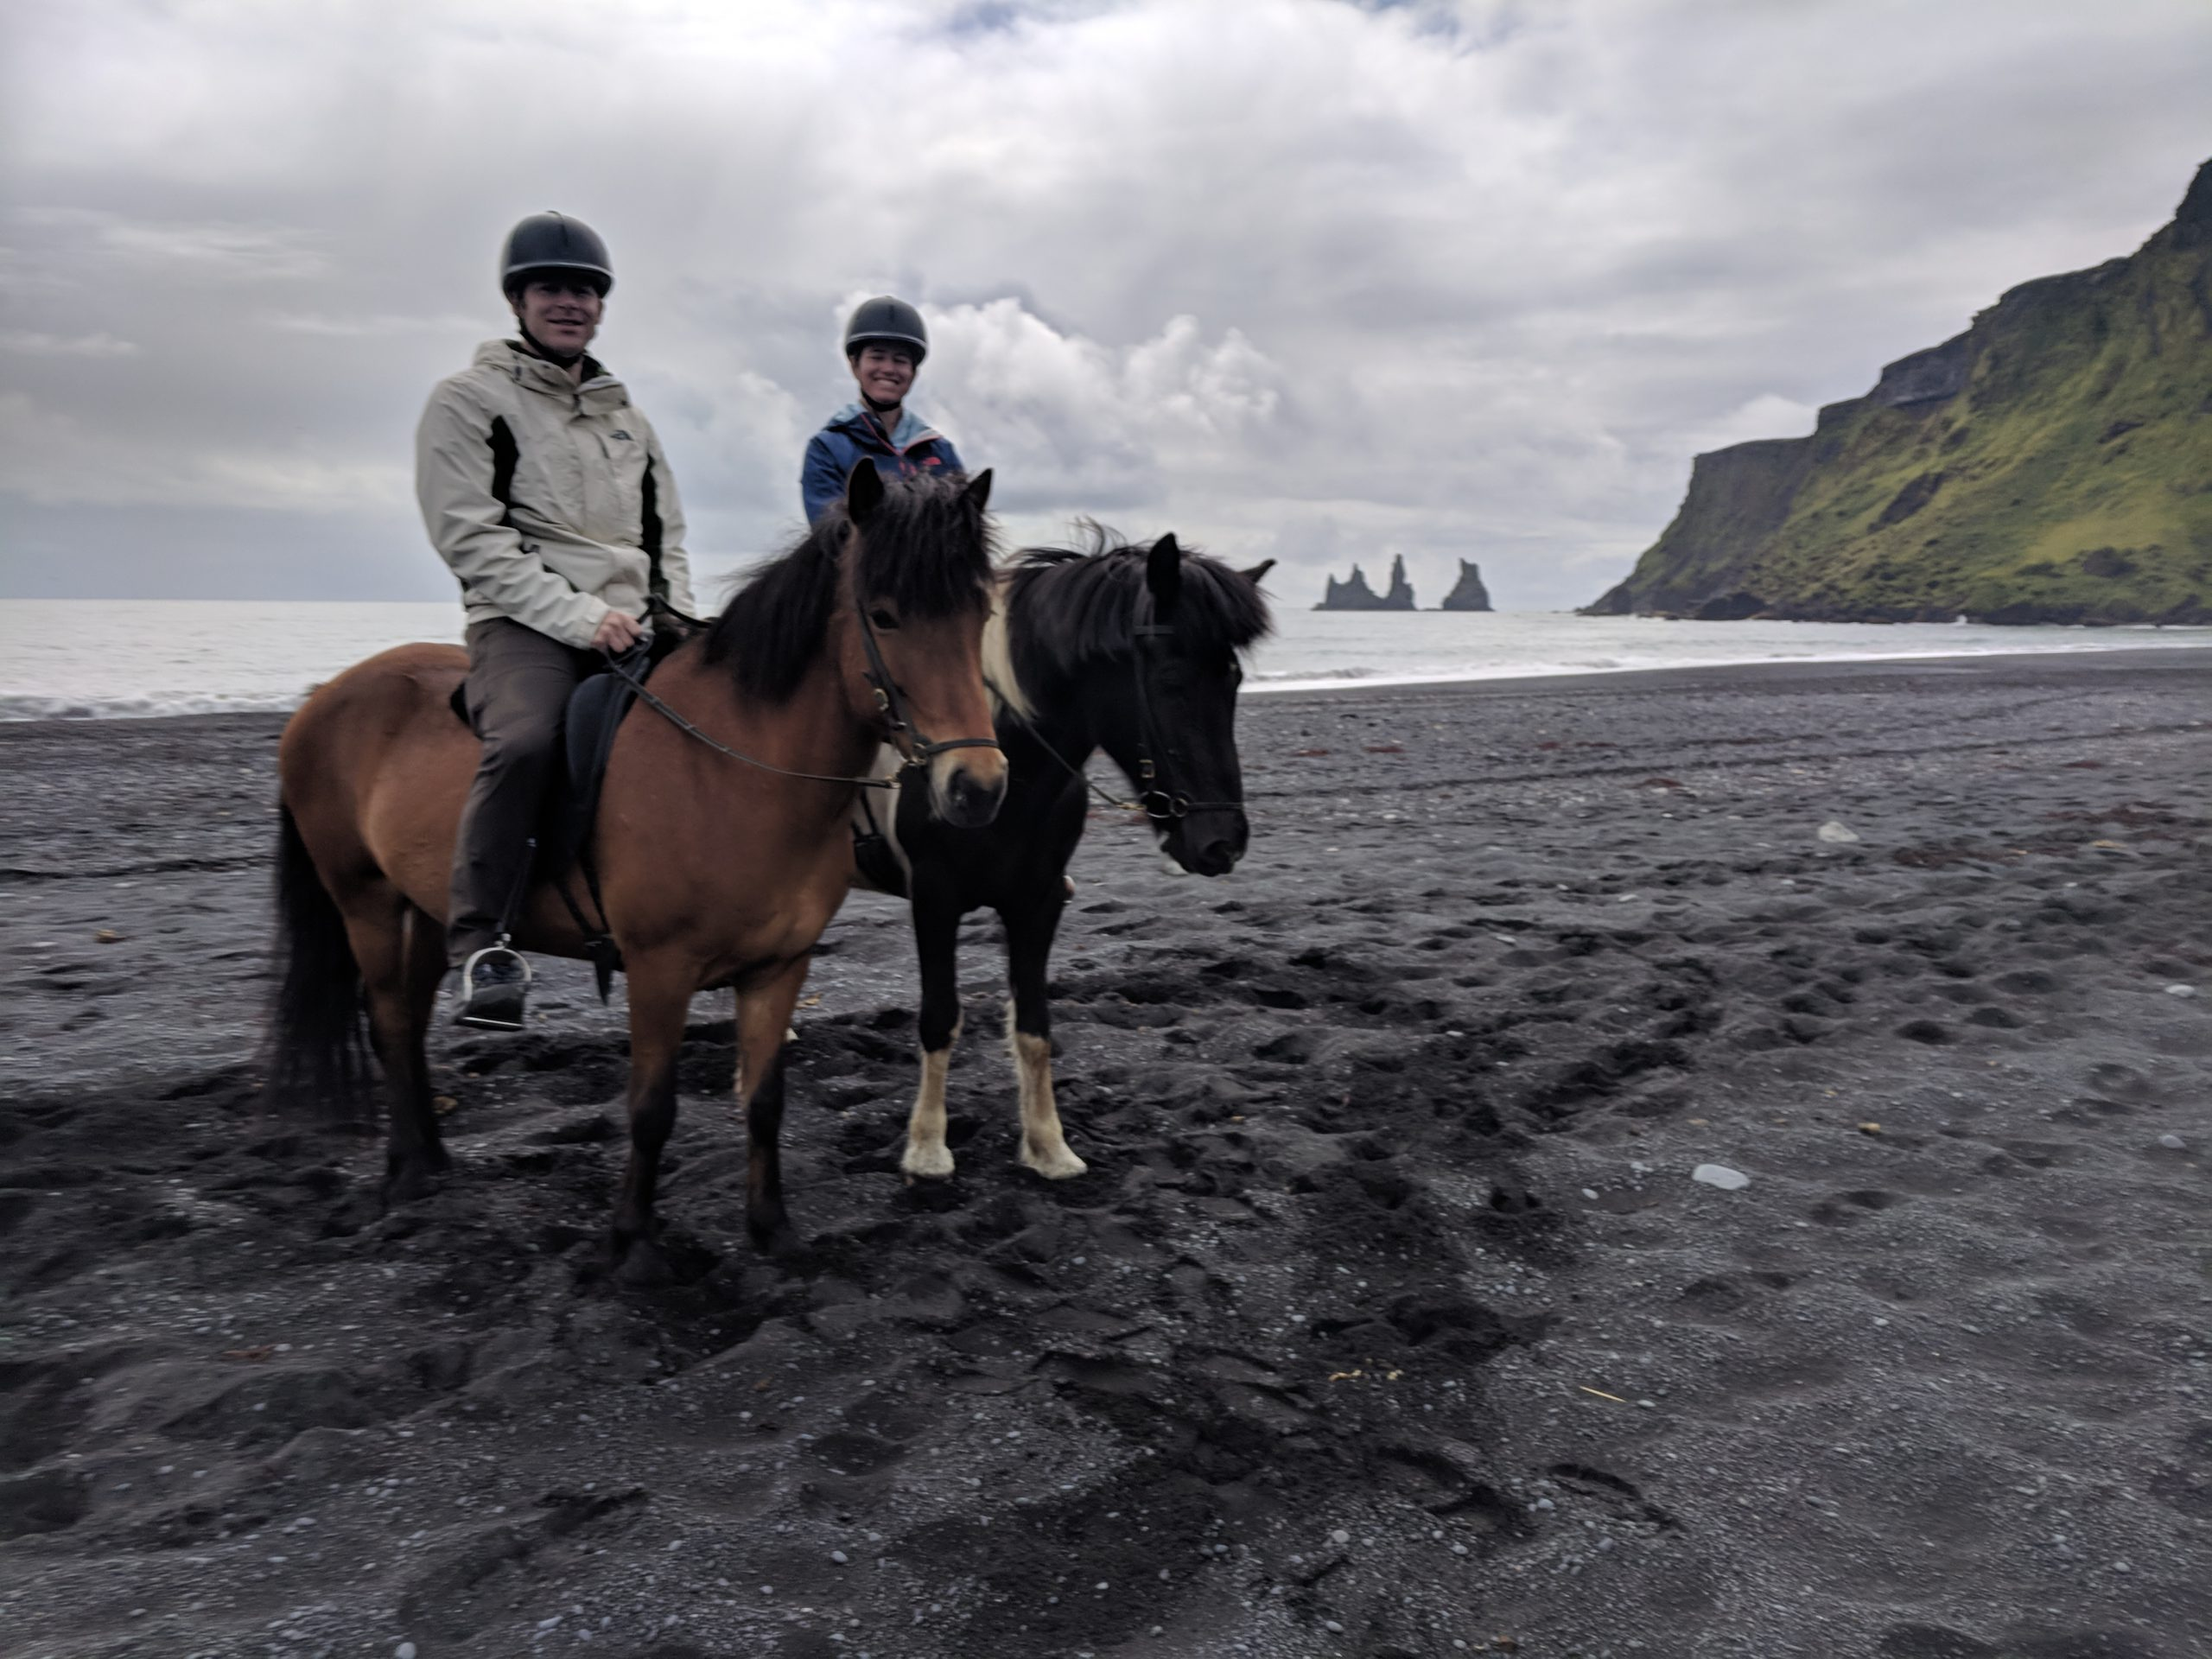 Horseback Riding on Iceland's Black Sand Beach